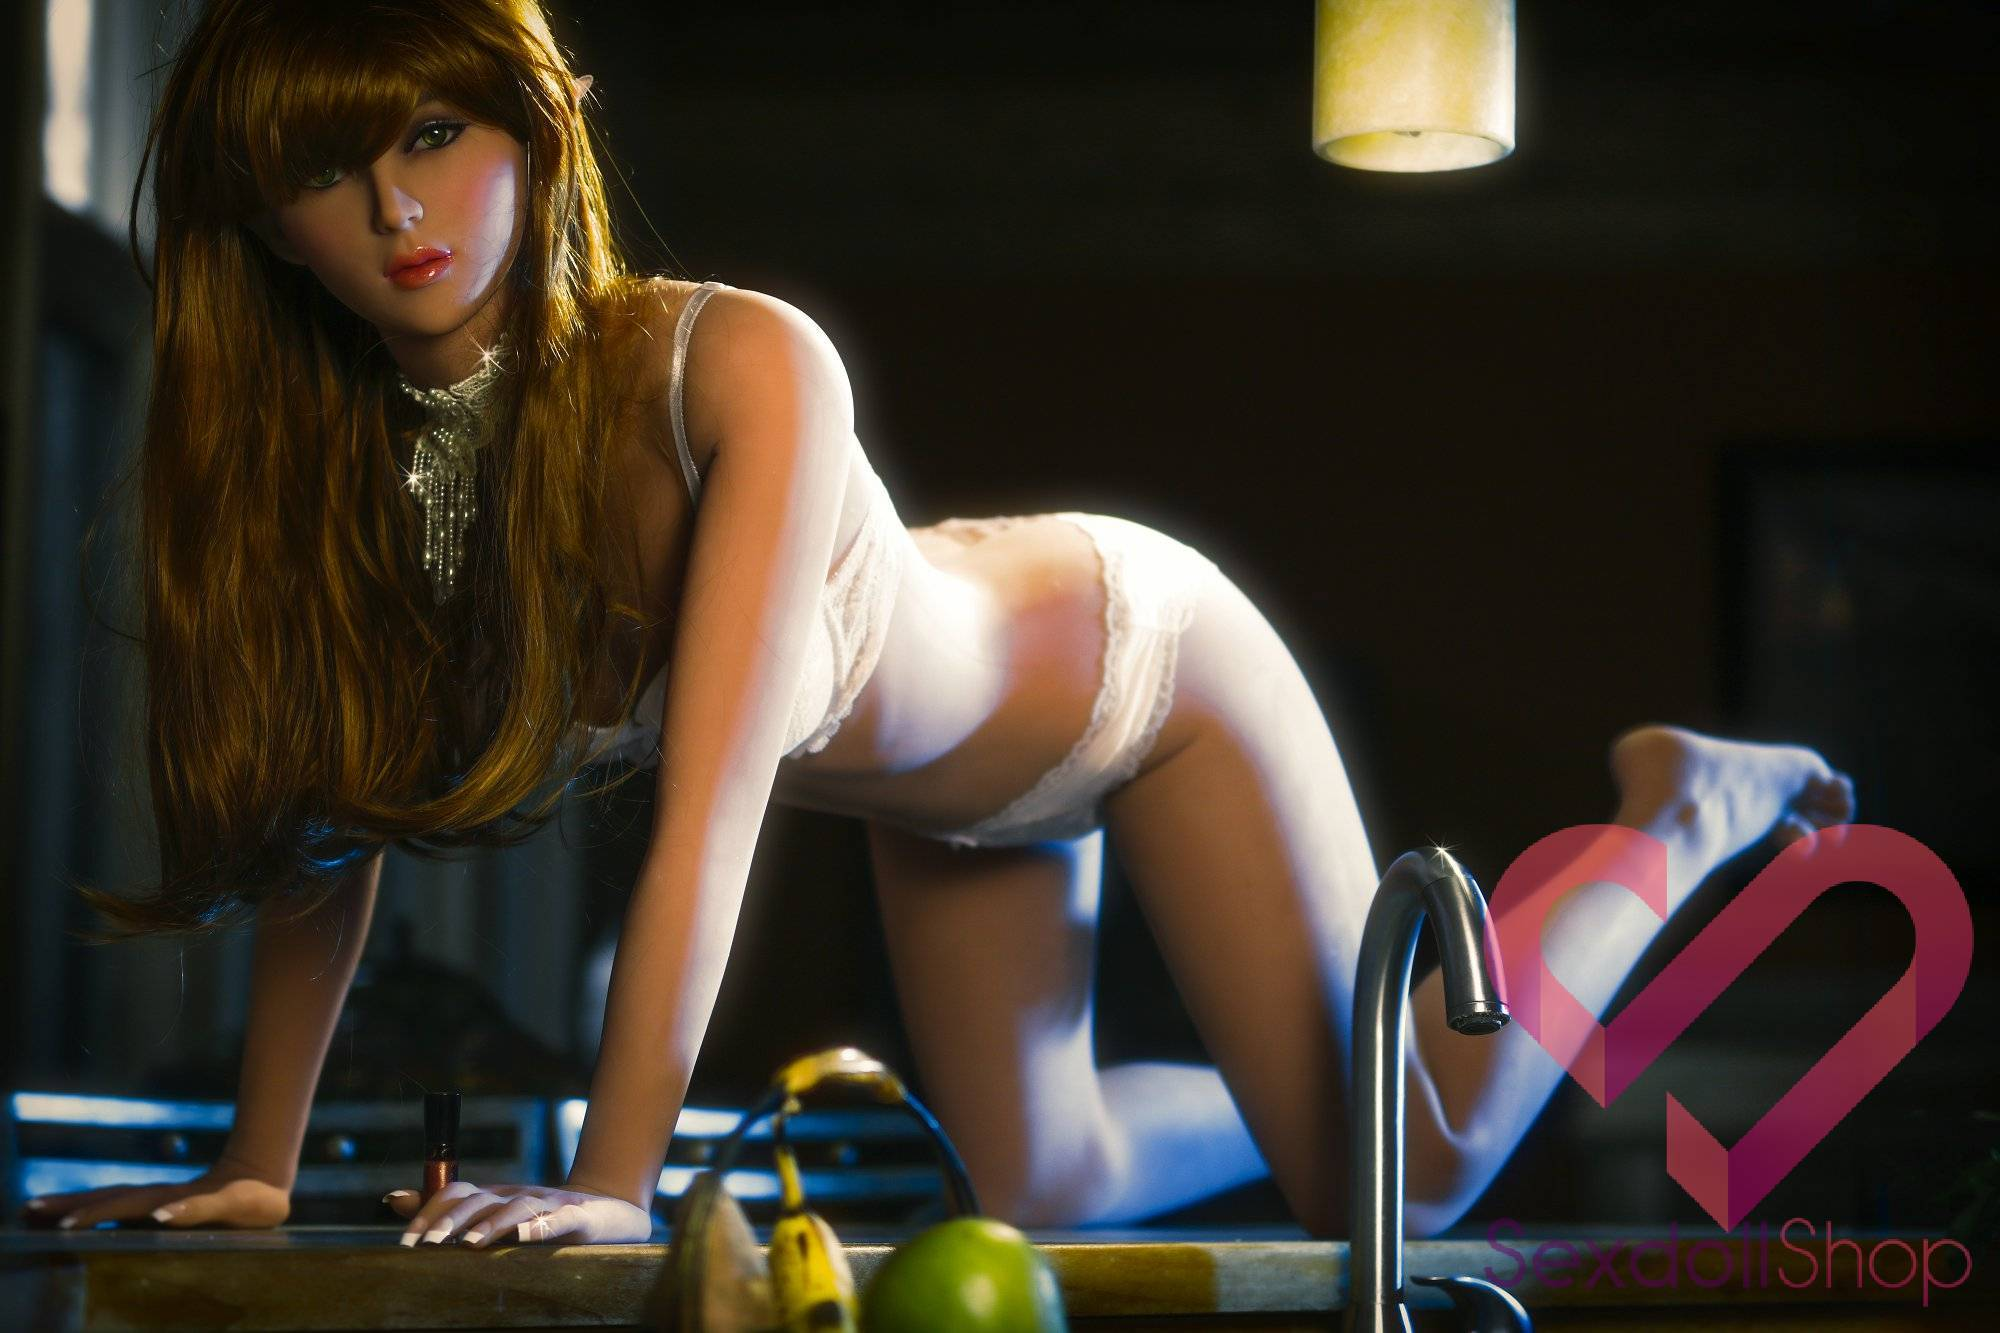 Download video sex doll erotic photo